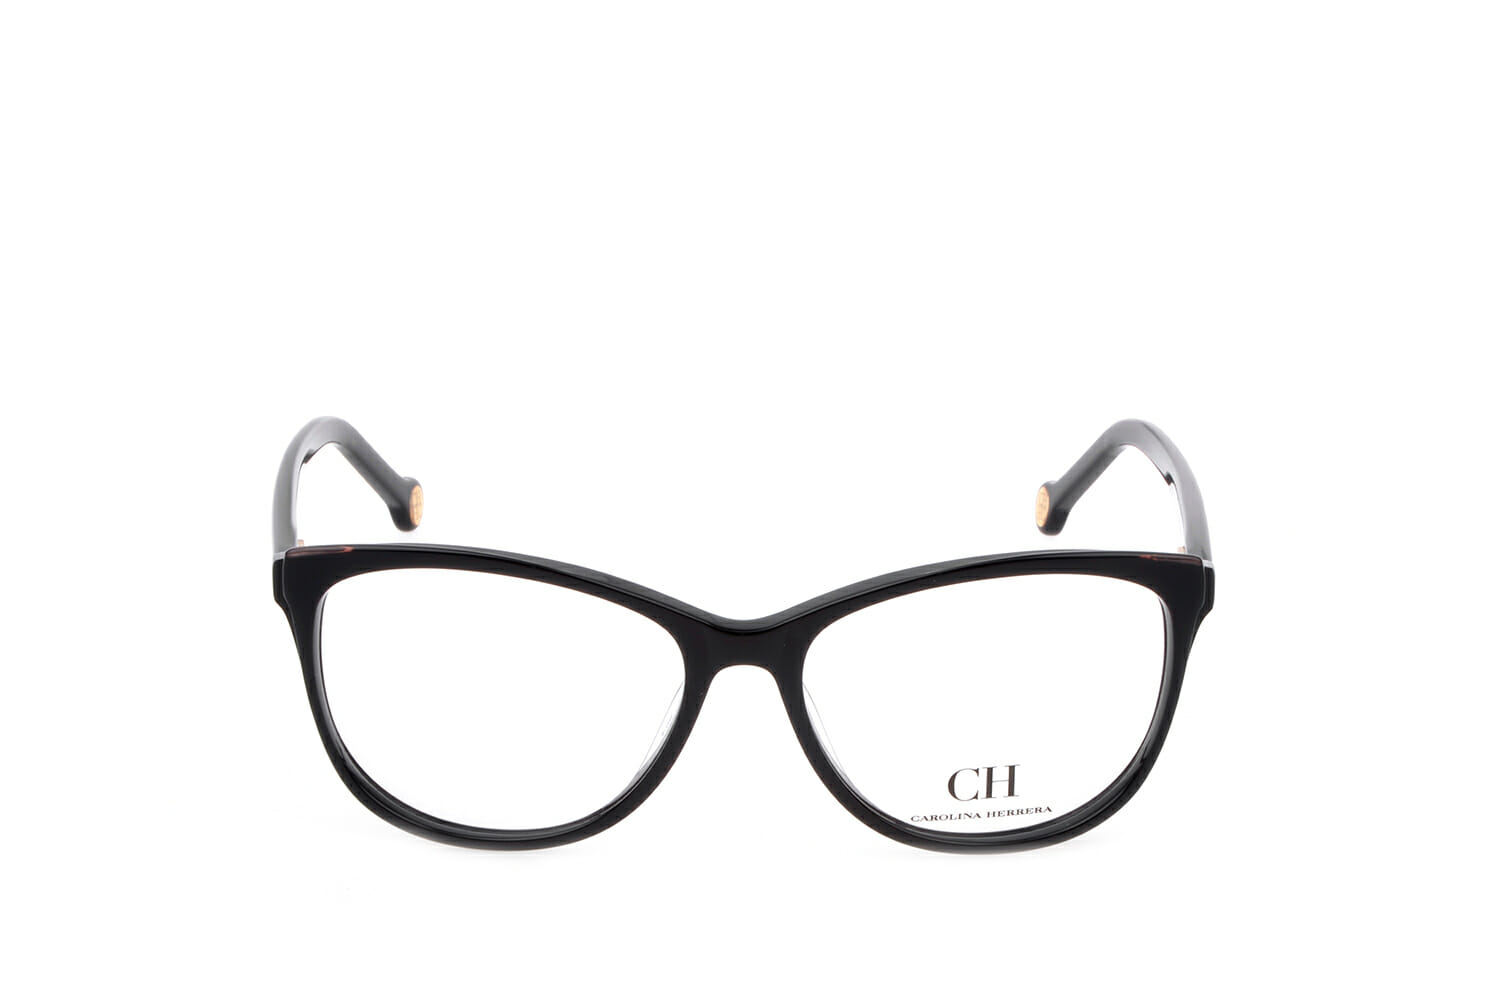 CH CAROLINA HERRERA EYEWEAR WOMEN FRONTAL